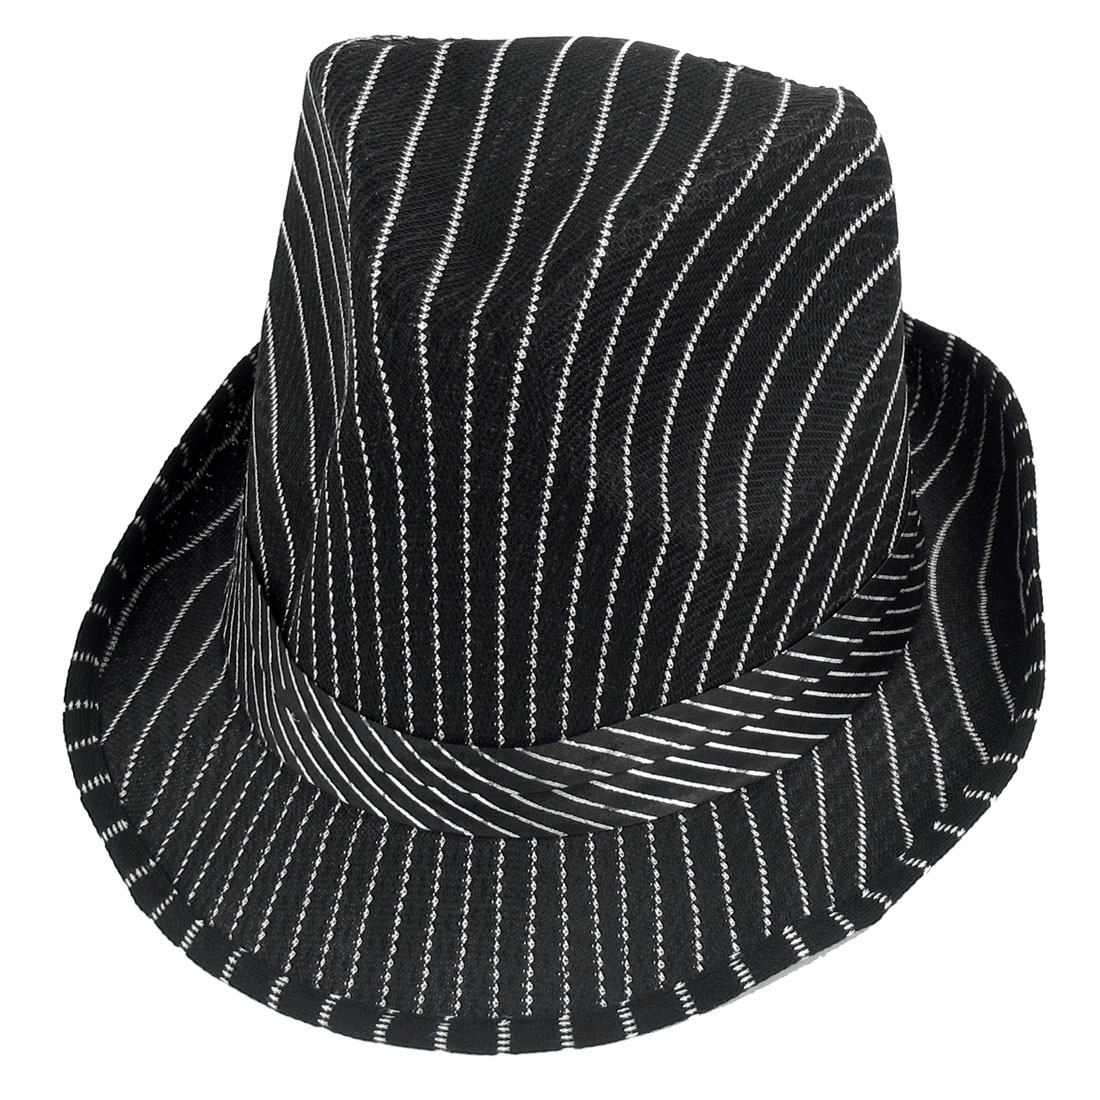 White Strips Print Band Detail Cloche Bucket Hat Black for Ladies